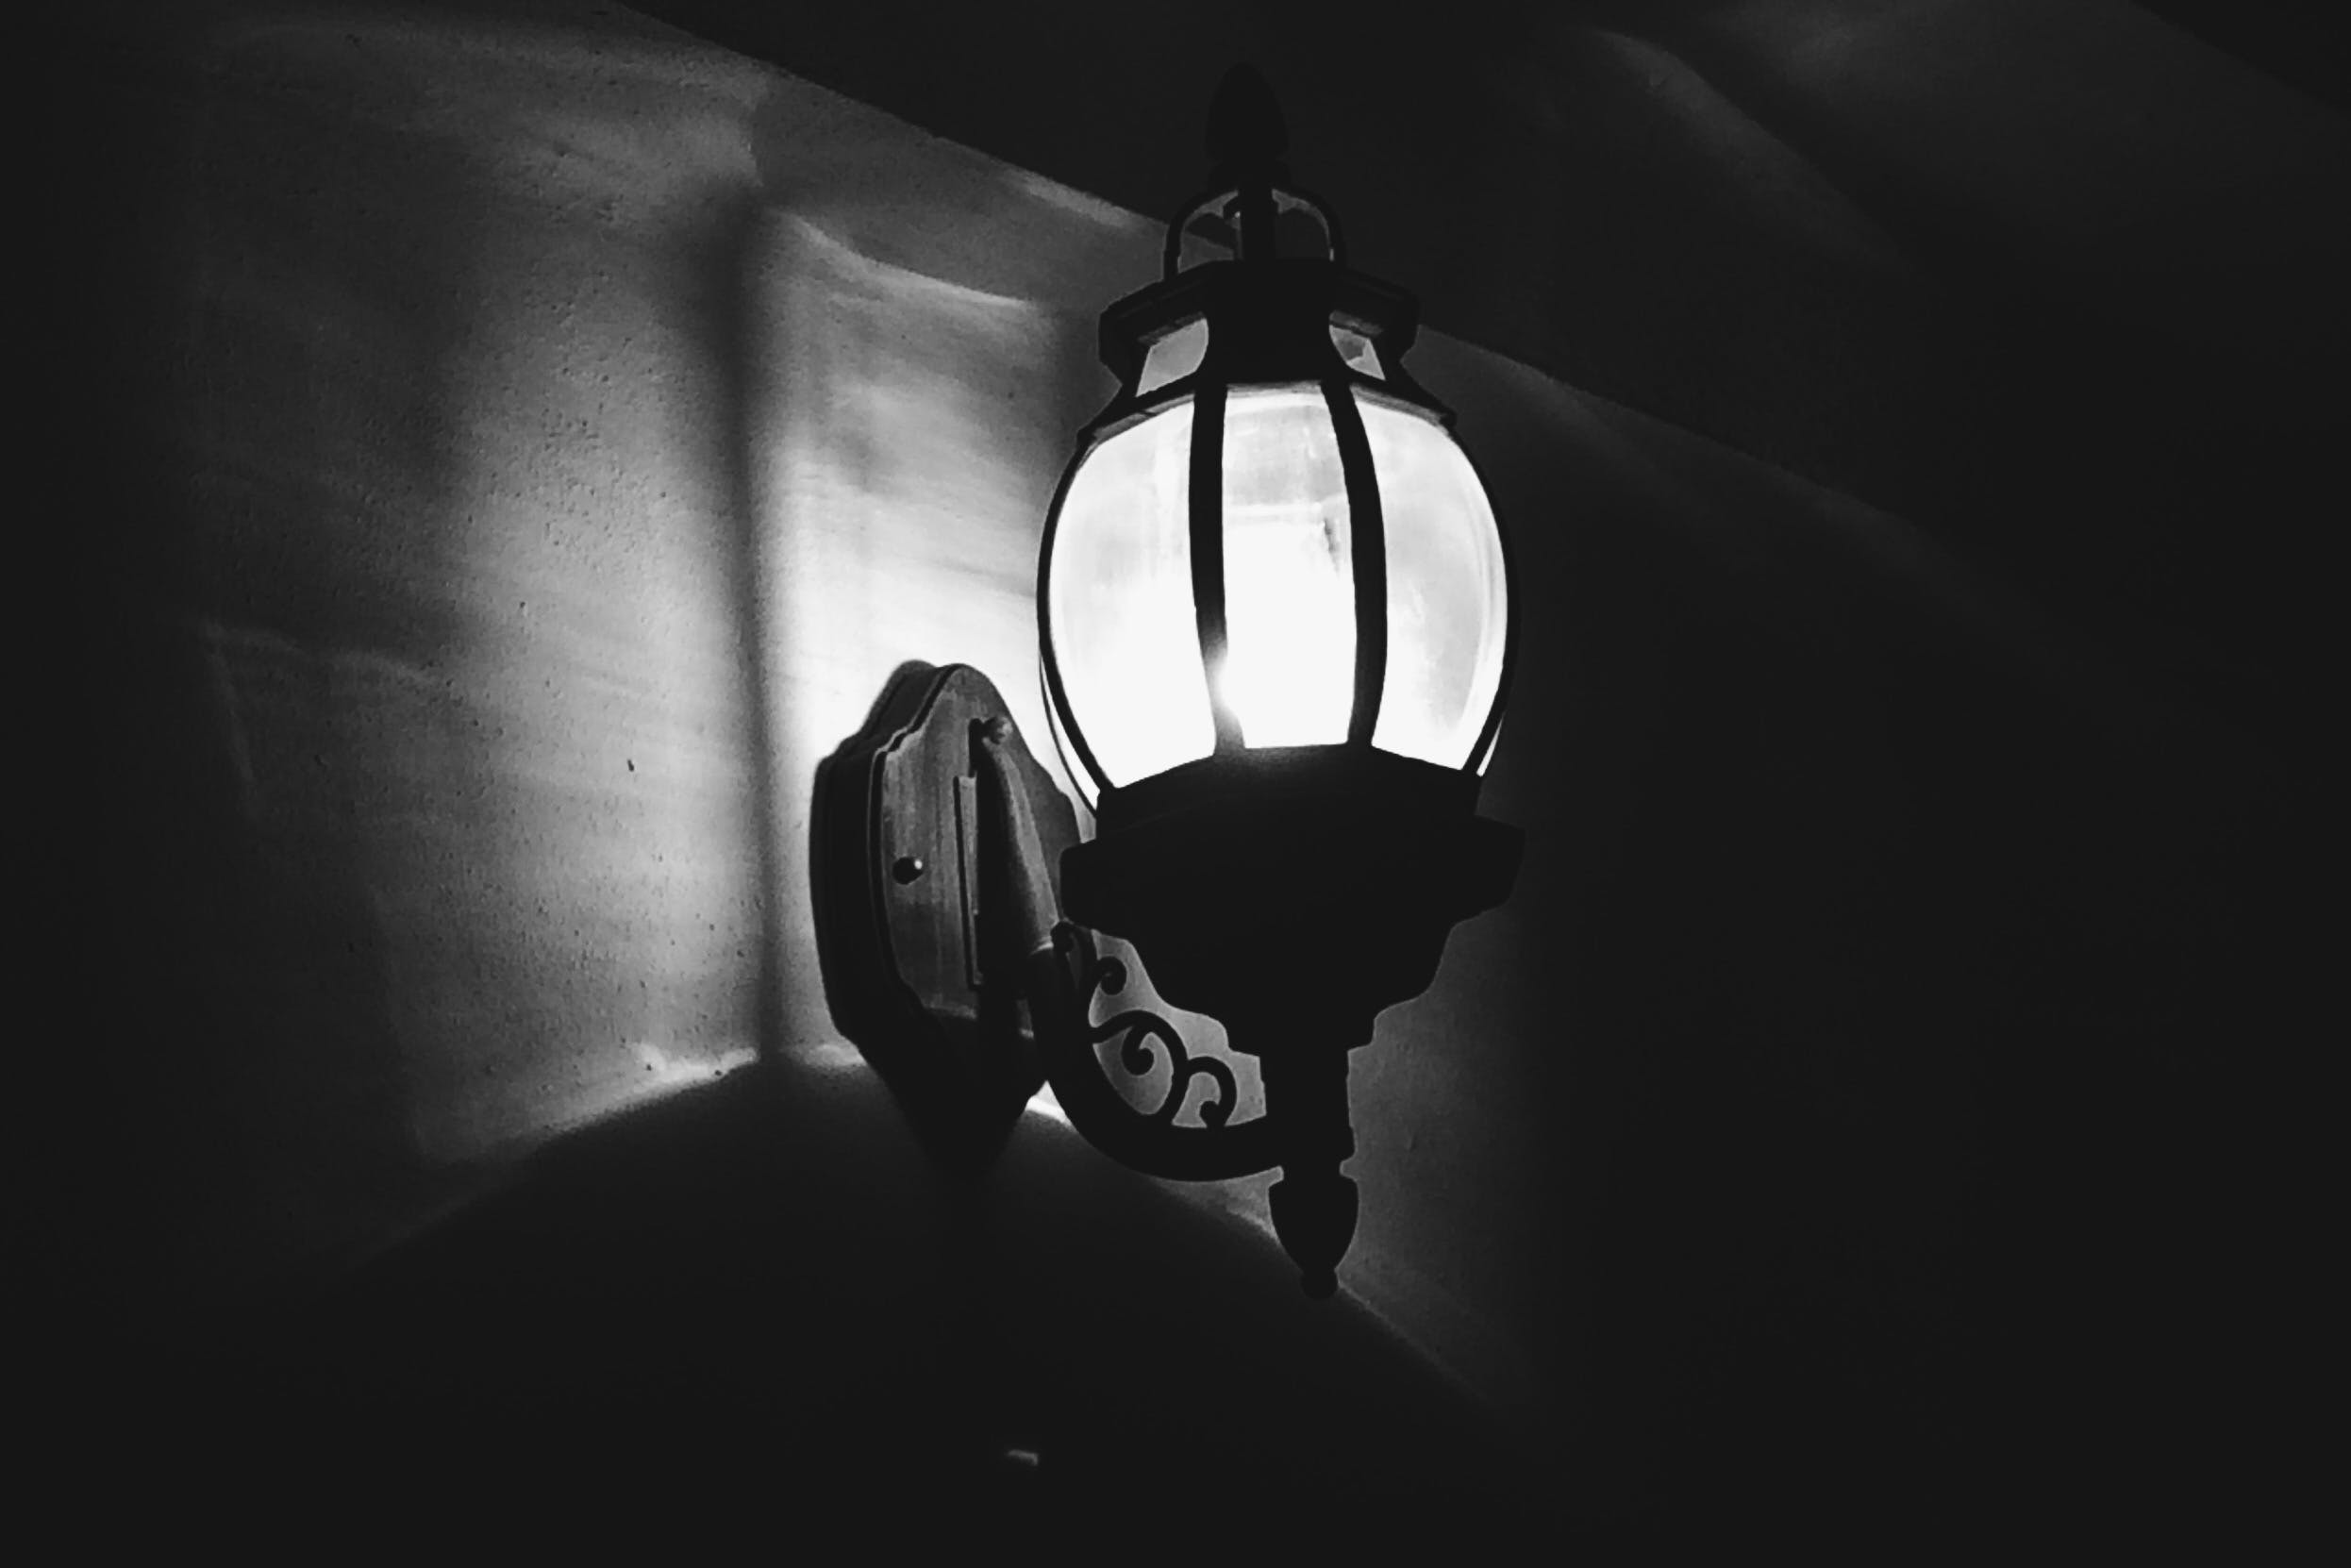 Grayscale Photography of Sconce